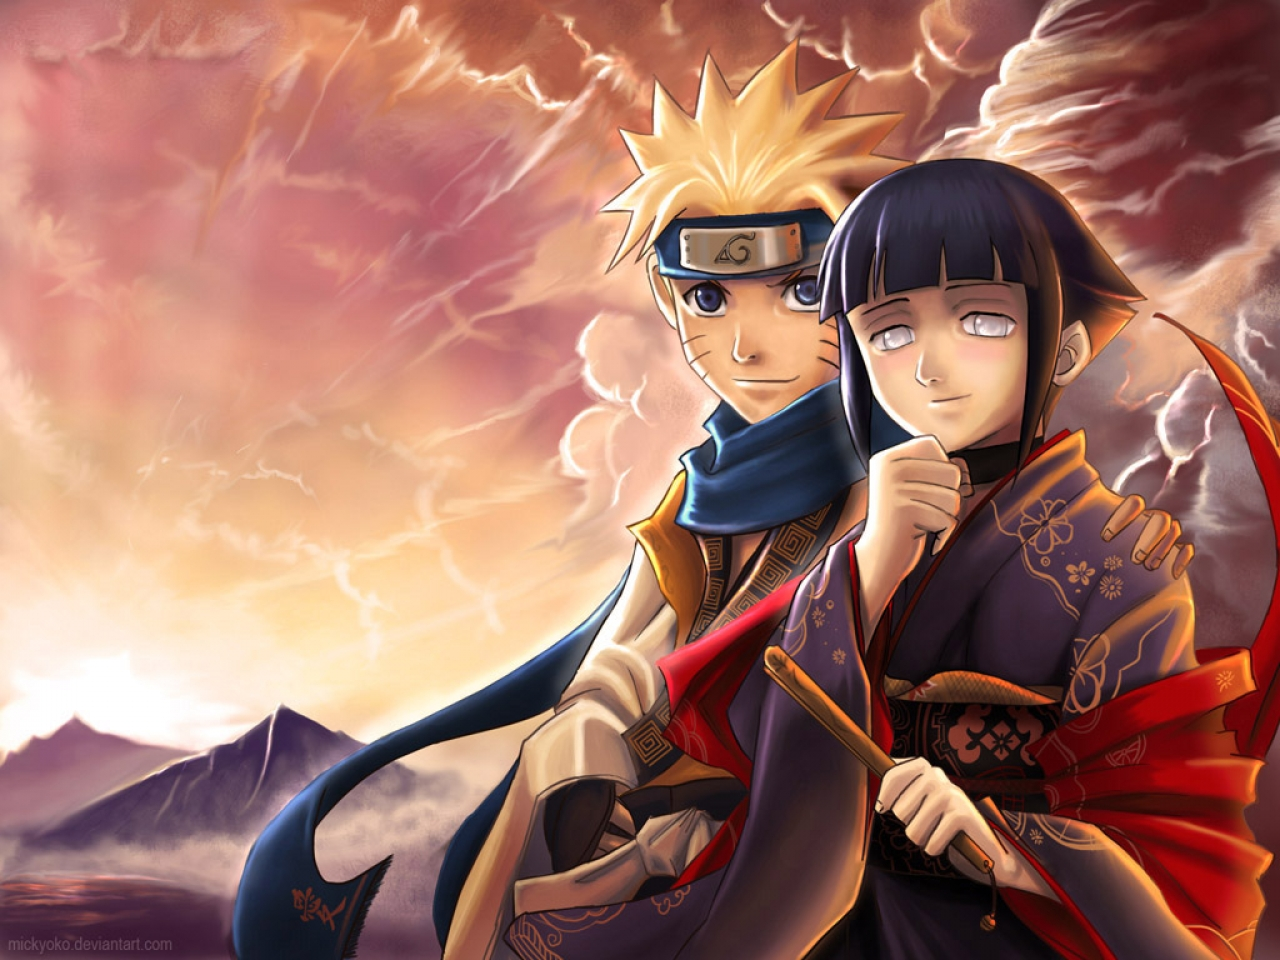 in Love Naruto Shippuden Wallpapers  Naruto Shippuden Wallpapers